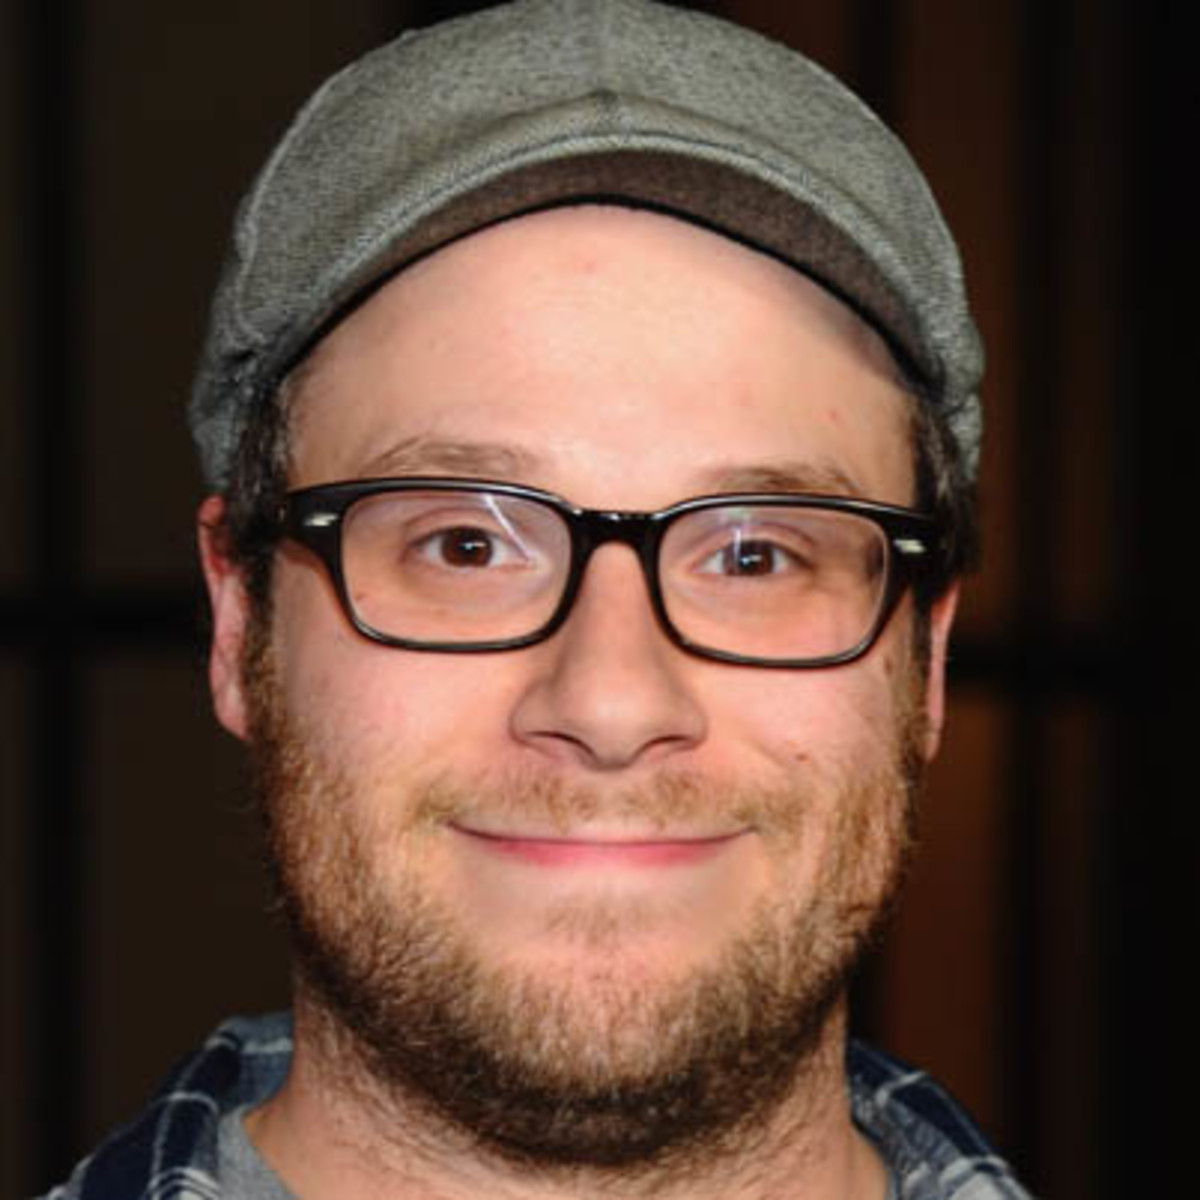 LOS ANGELES, CA - FEBRUARY 29:  Actor Seth Rogen arrives at Magnet Releasing's Los Angeles Screening of 'Goon' at DGA Theater on February 29, 2012 in Los Angeles, California.  (Photo by Alberto E. Rodriguez/Getty Images)